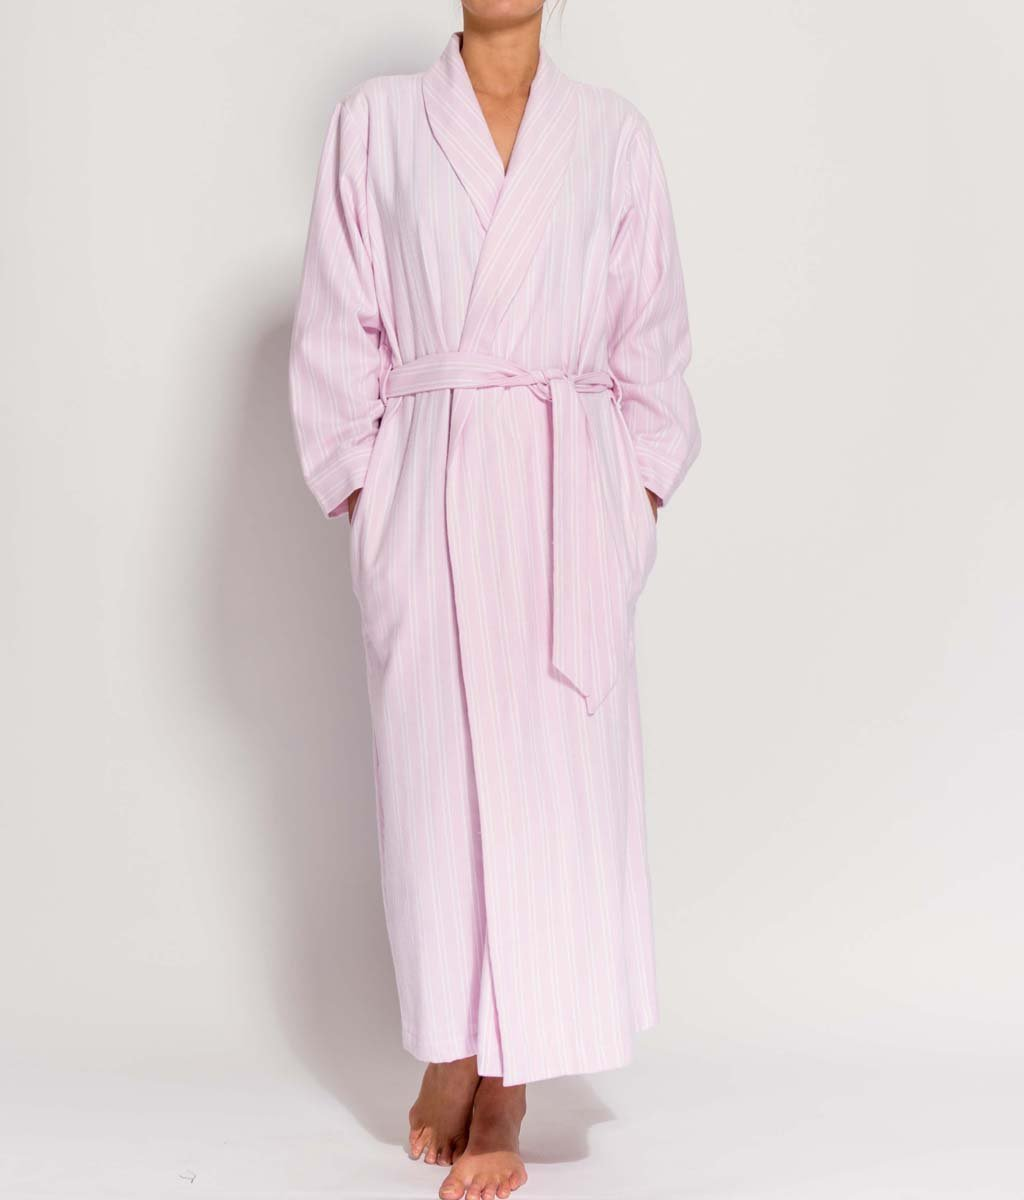 British Boxers Two-Fold Flannel (Westwood Pink Stripe) Robe - Sandra Dee - Product Shot - Front